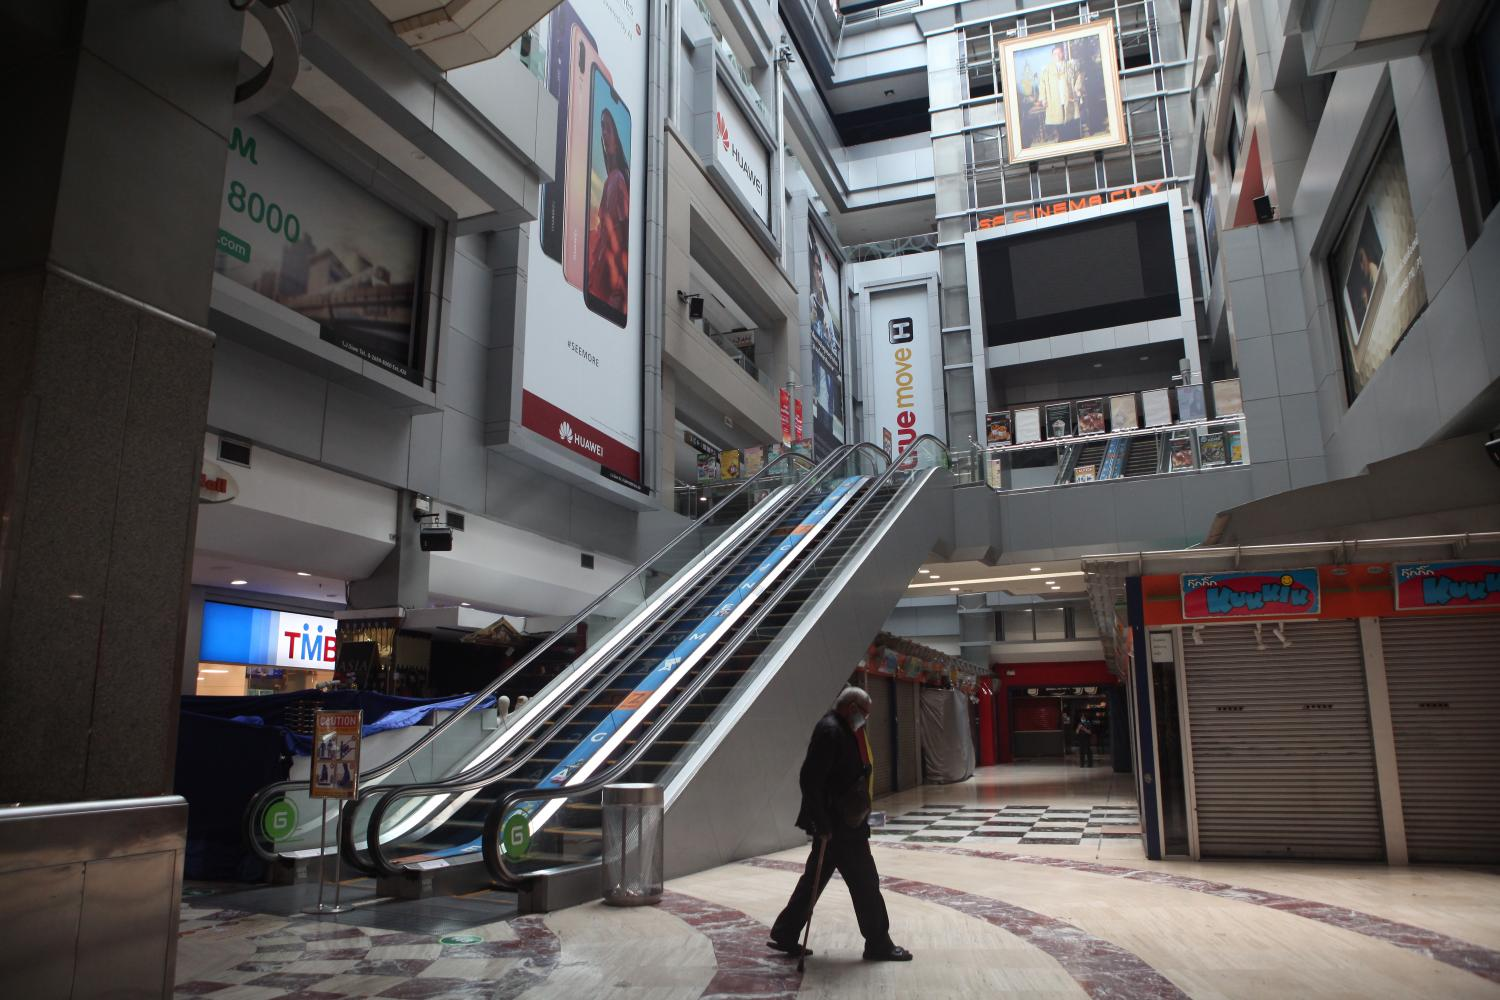 MBK is nearly deserted after the emergency decree took effect. The Federation of Thai Industries wants the government to implement relief measures for affected employers and employees.(Photo by Arnun Chonmahatrakool)